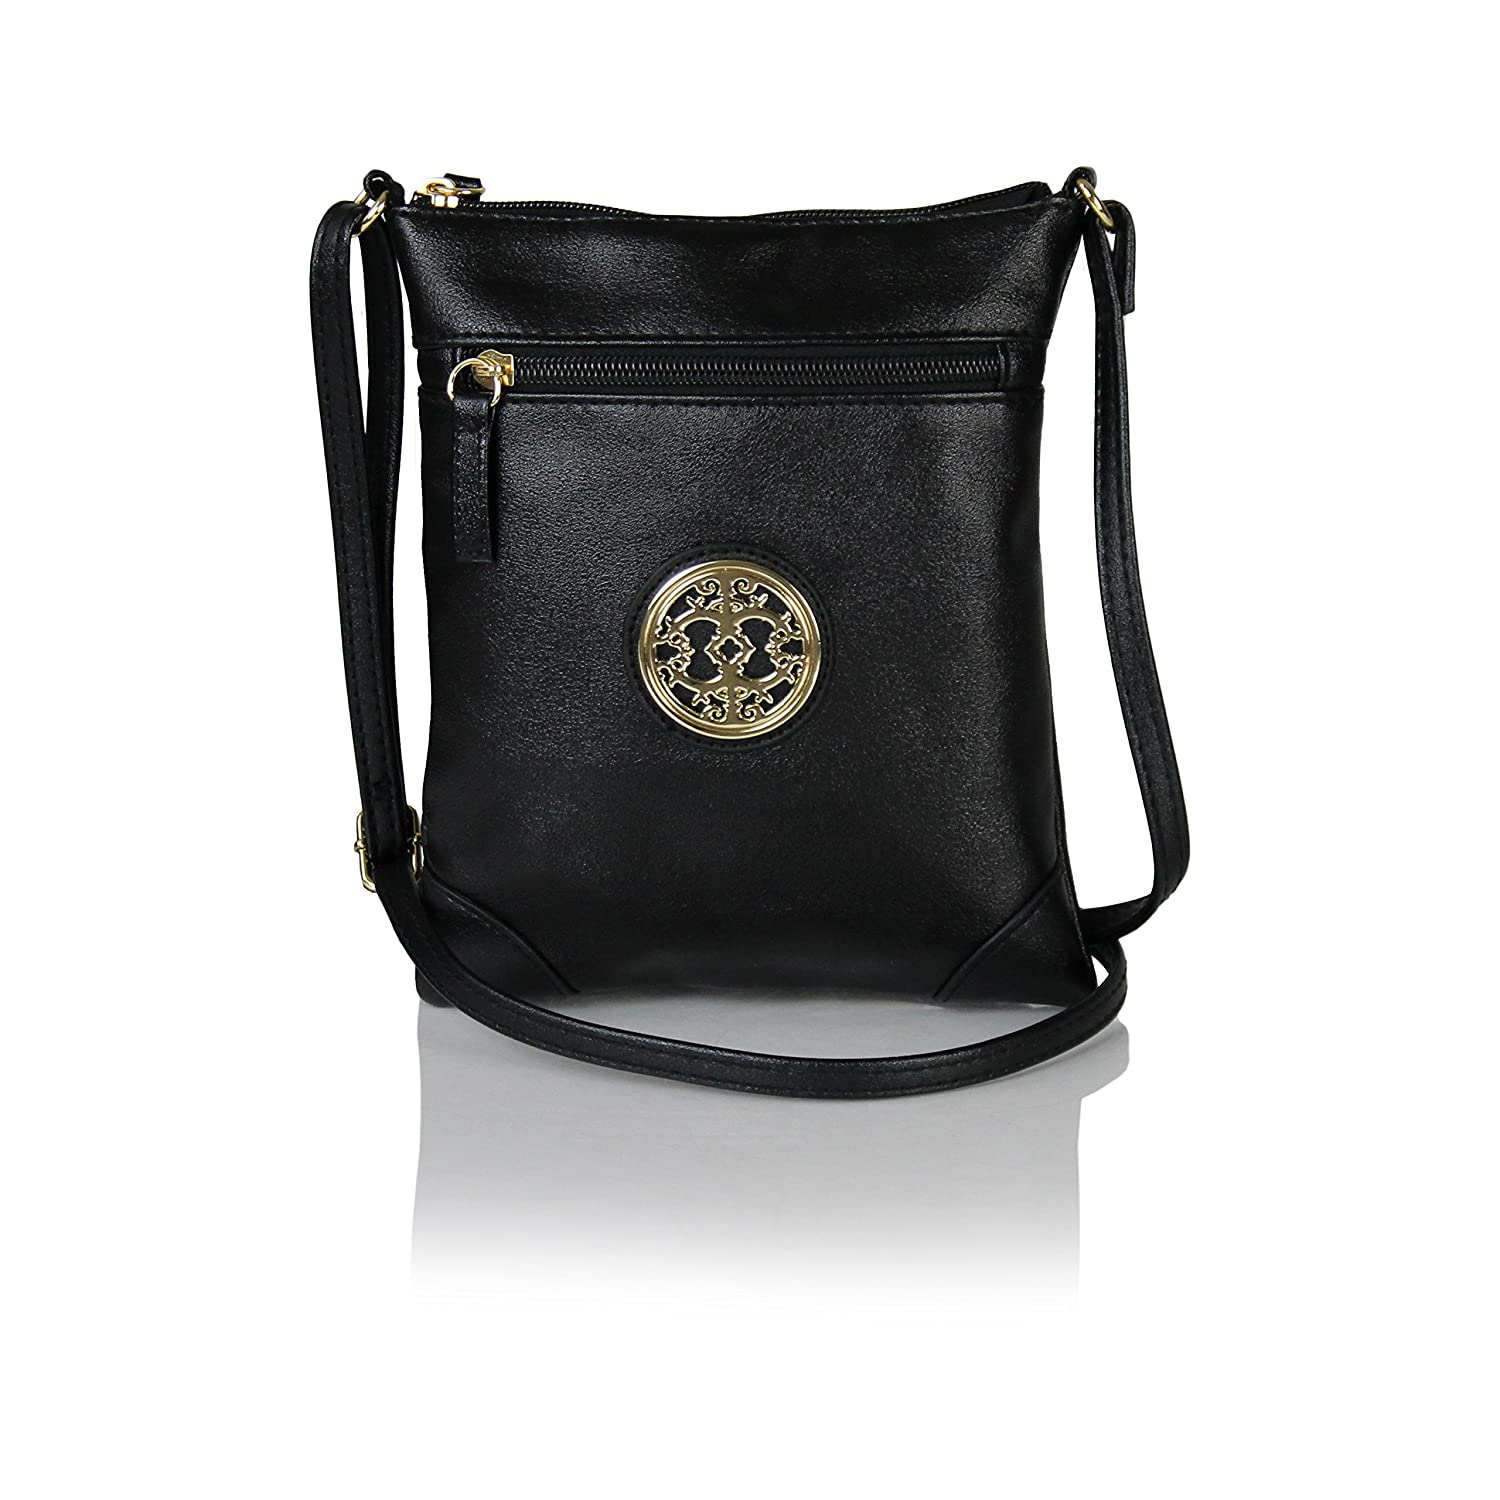 8986aed55e3f Chic Mini Vegan Leather Crossbody Purse with Gold Medallion Small Festival  Bag (Black)  Handbags  Amazon.com